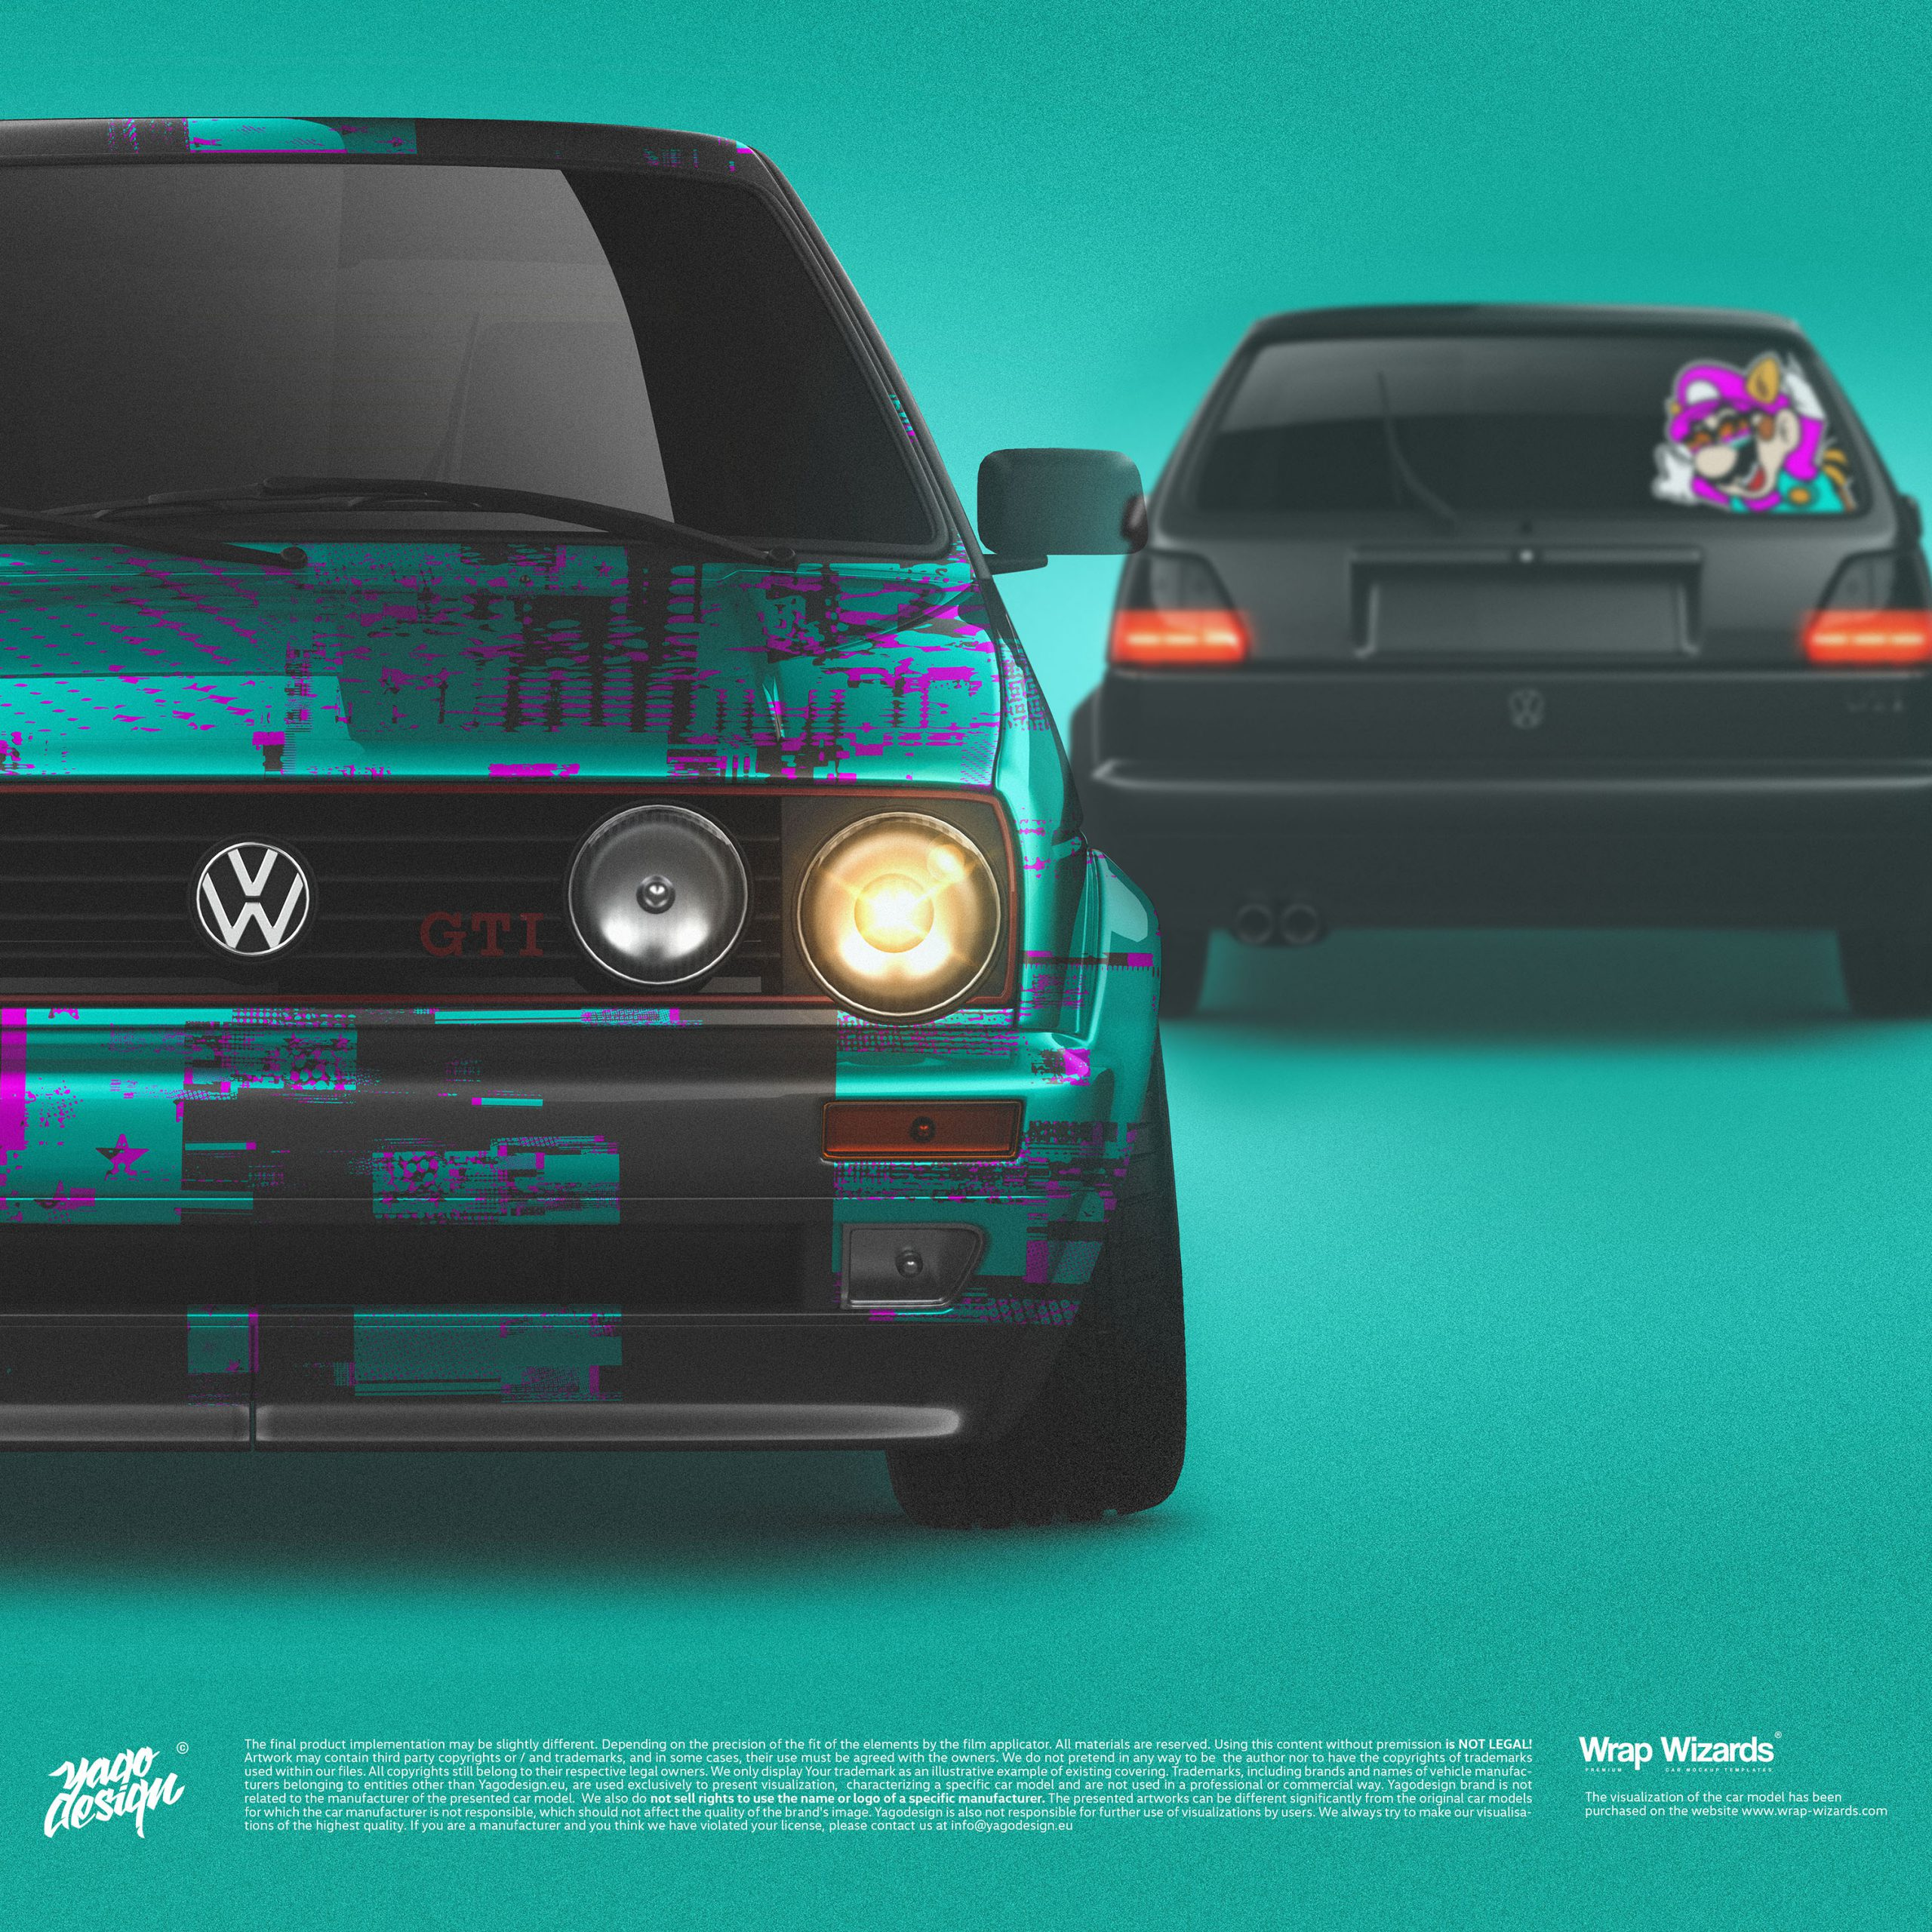 Volkswagen-Golf-MK2-GTi-by-Yagodesign-2020-Car-wrapping-Design-2